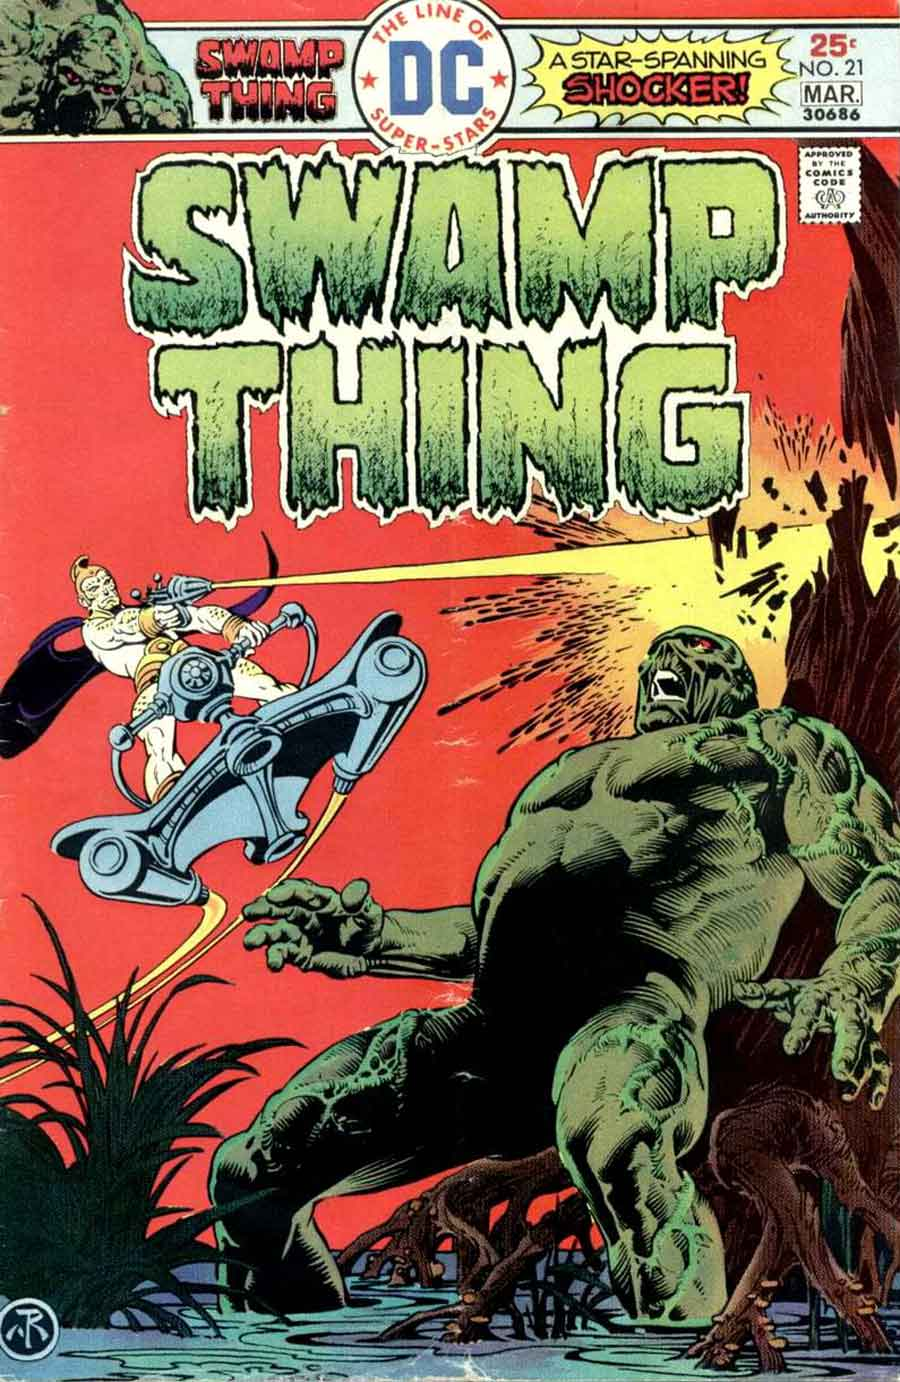 Swamp Thing v1 #21 1970s bronze age dc comic book cover art by Nestor Redondo